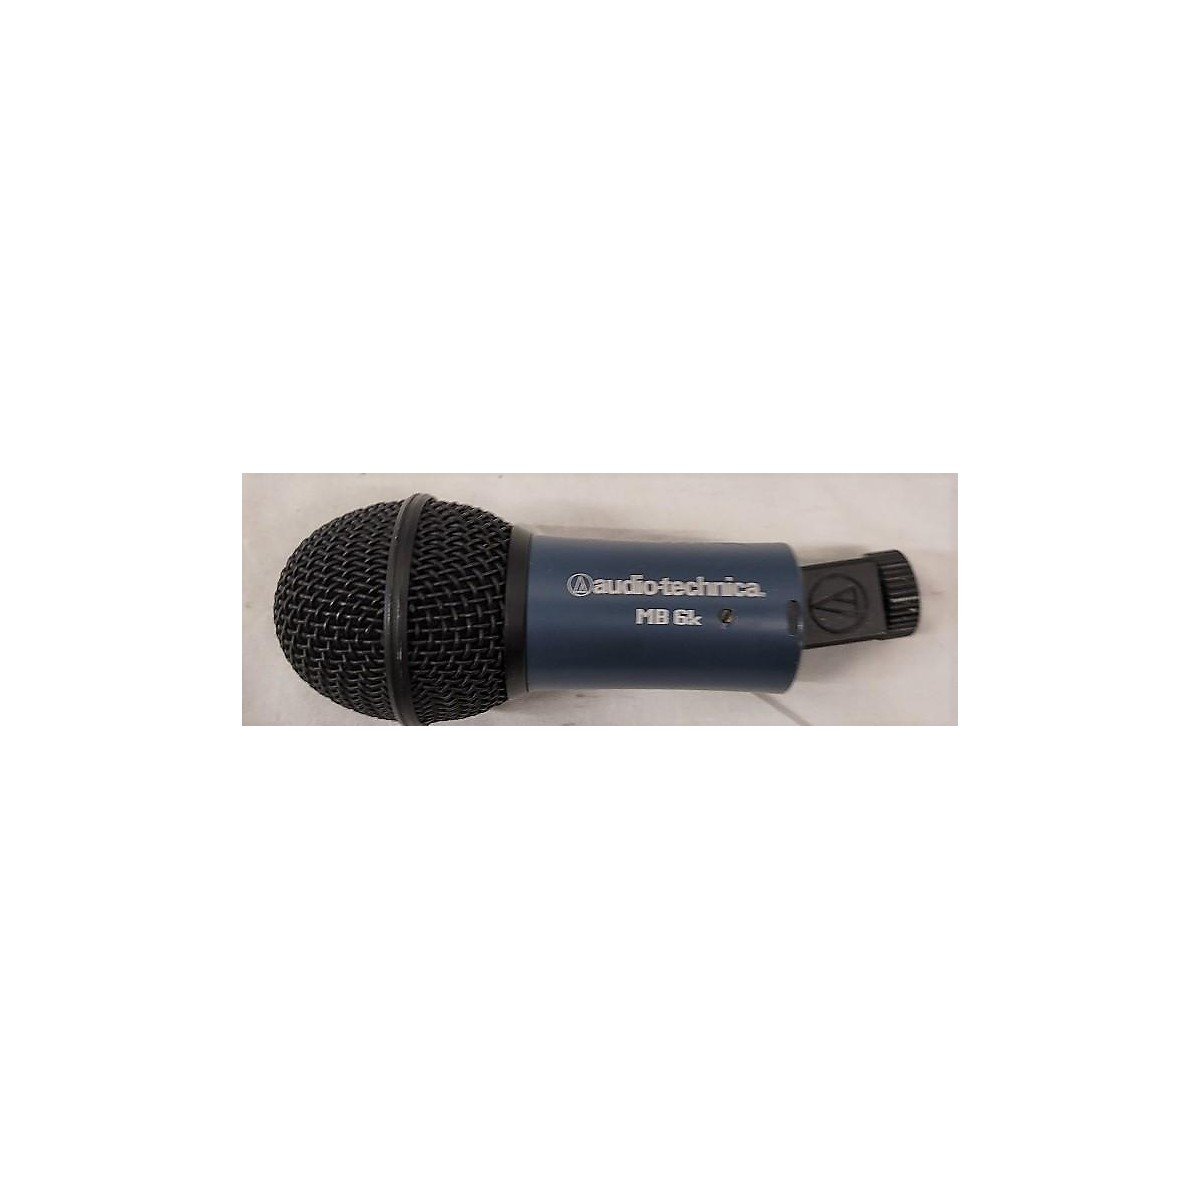 Audio-Technica MB6k Drum Microphone